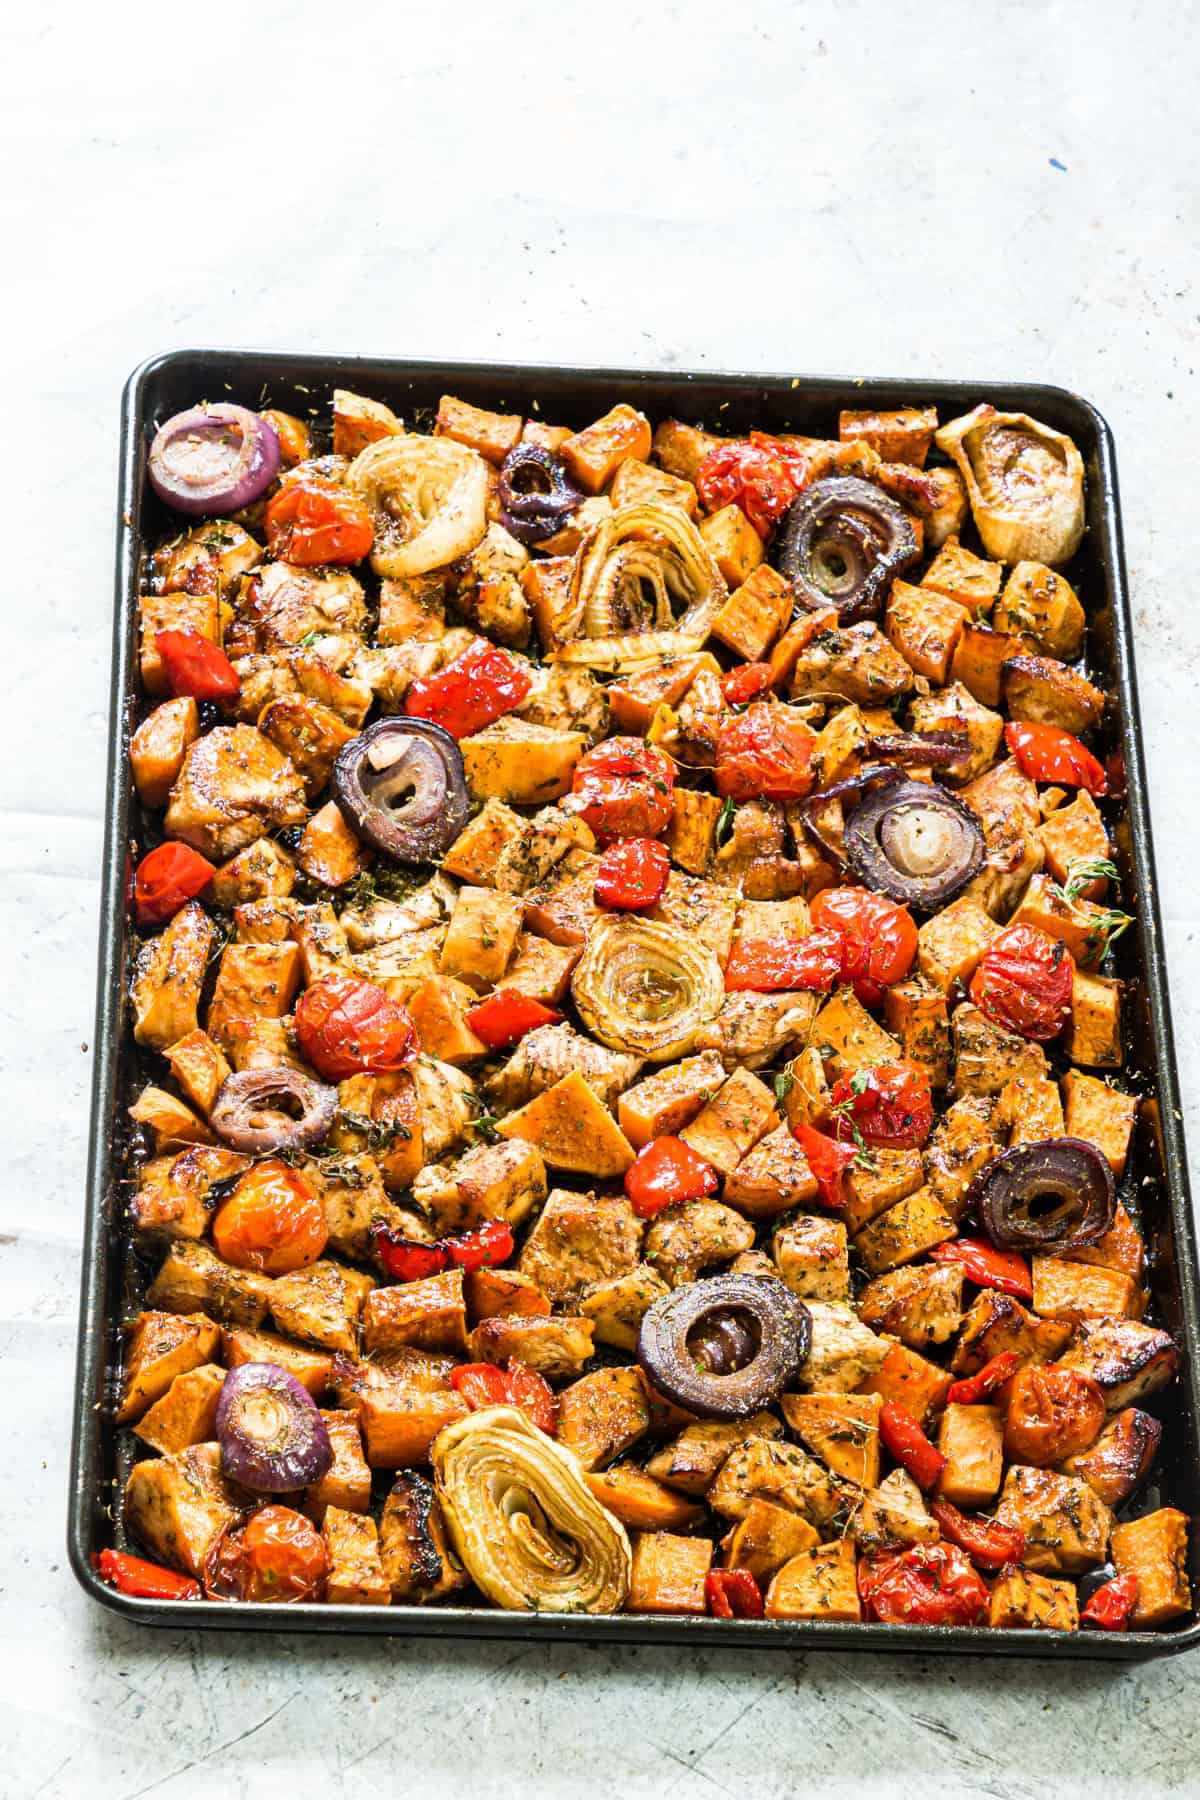 the sheet pan filled with cooked chicken and veggies